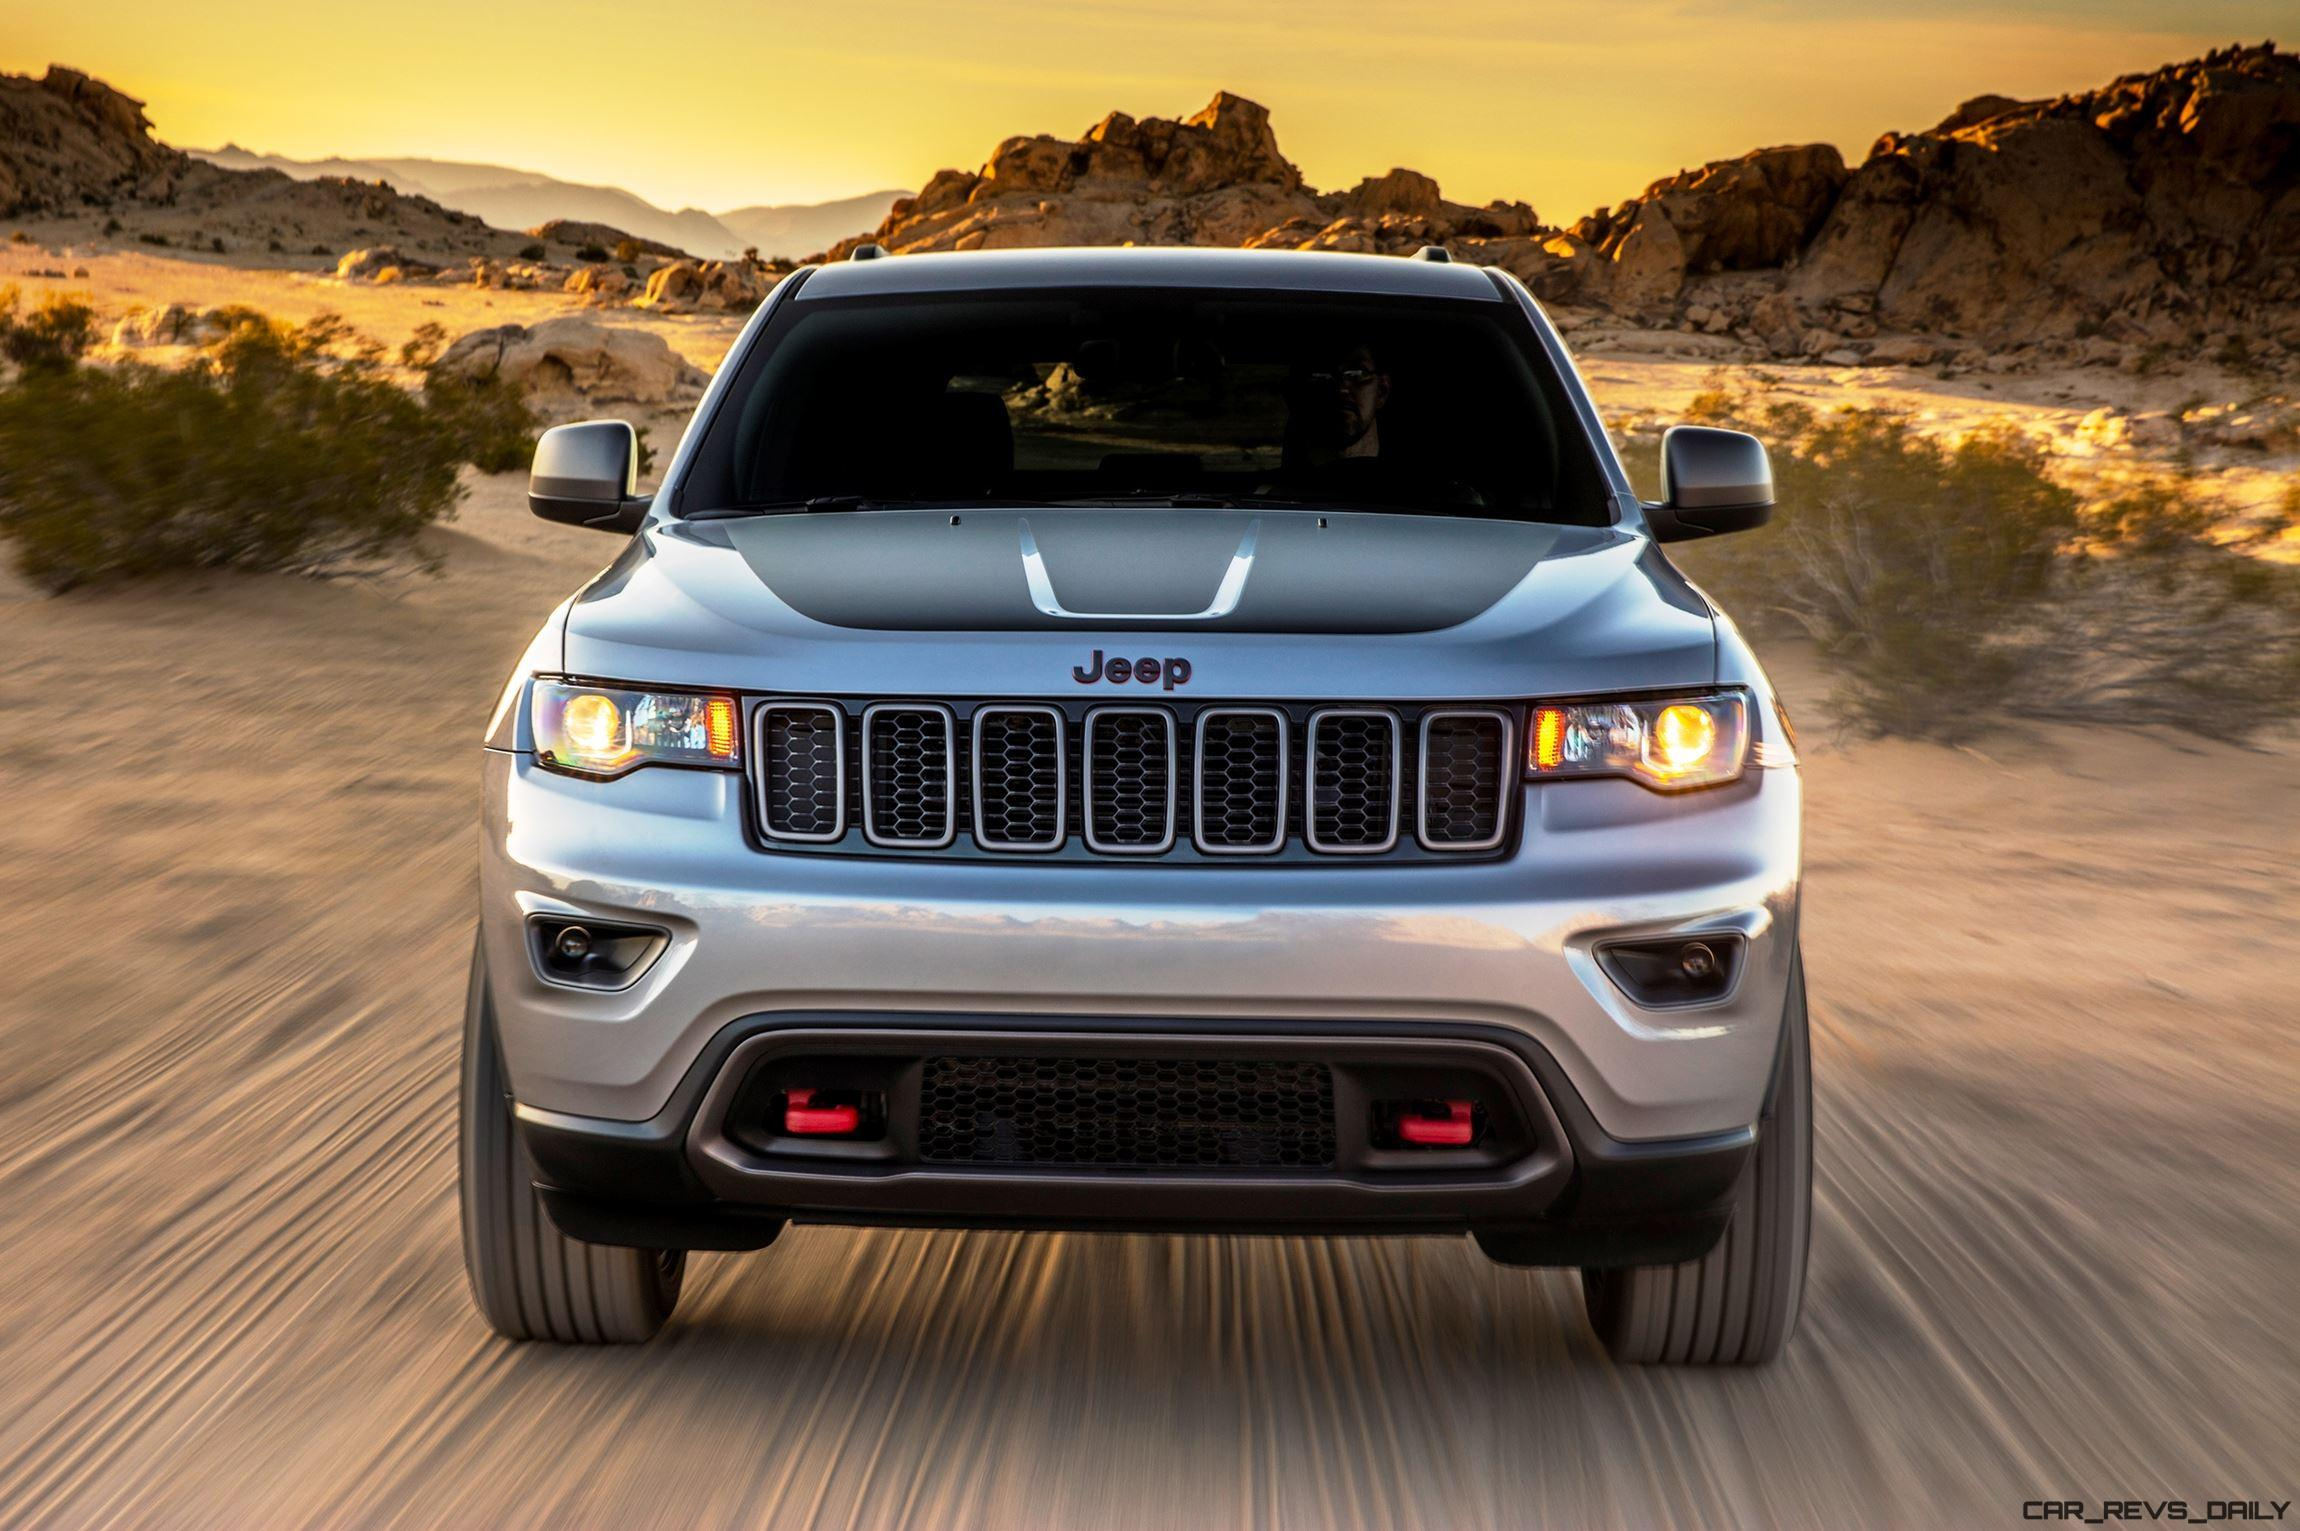 nyias 2017 jeep grand cherokee trailhawk and summit visual comparo vs 2015 car revs. Black Bedroom Furniture Sets. Home Design Ideas